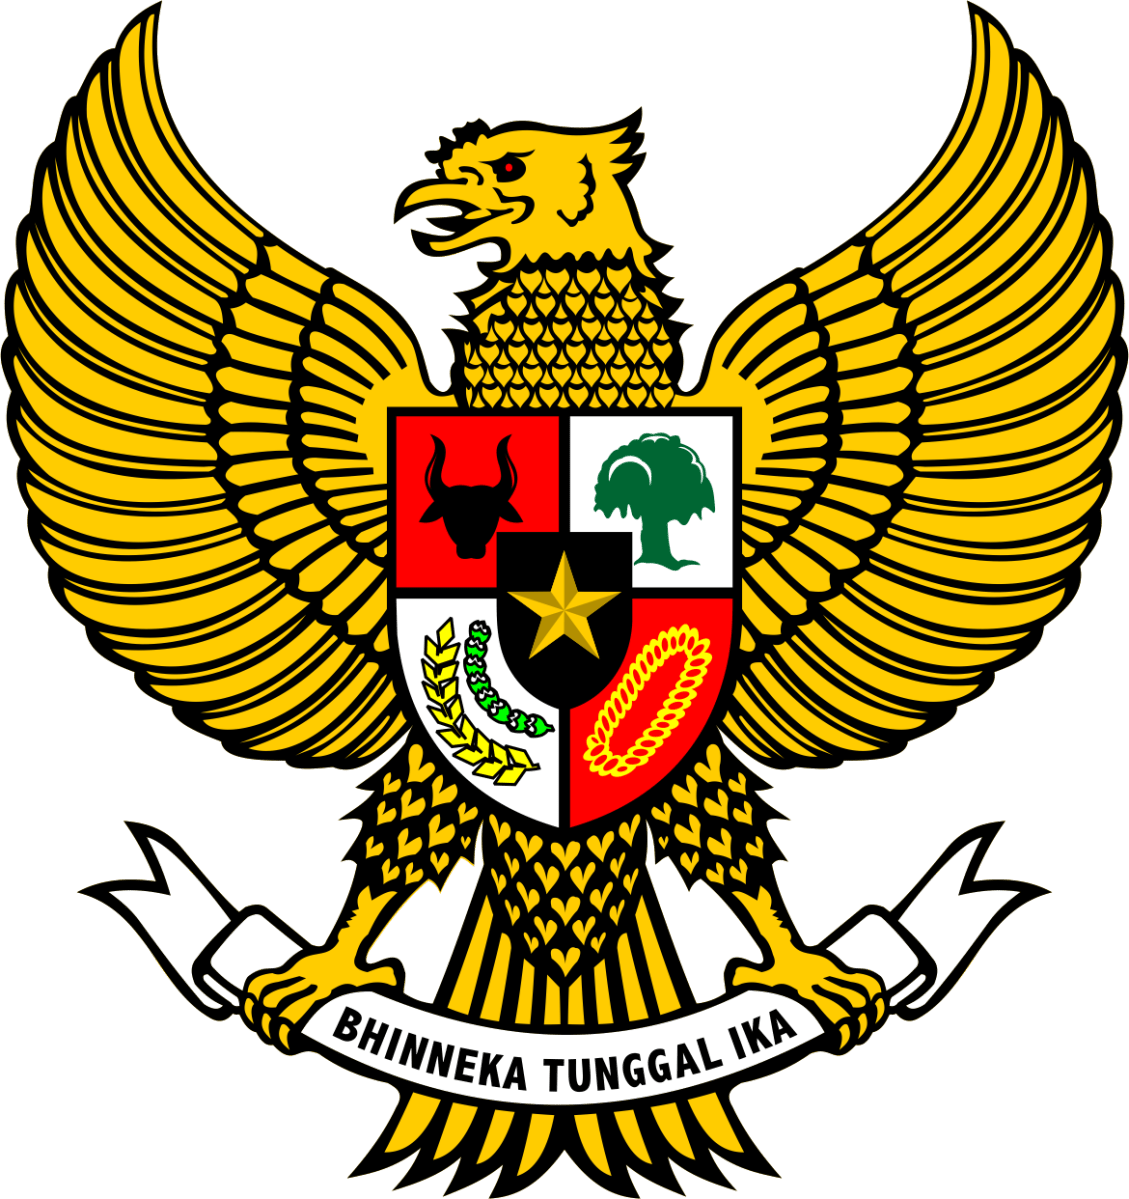 Pancasila Indonesia S Trademark Noypi X Indo S Indonesian Independence Special Post Noypi 143 Indo